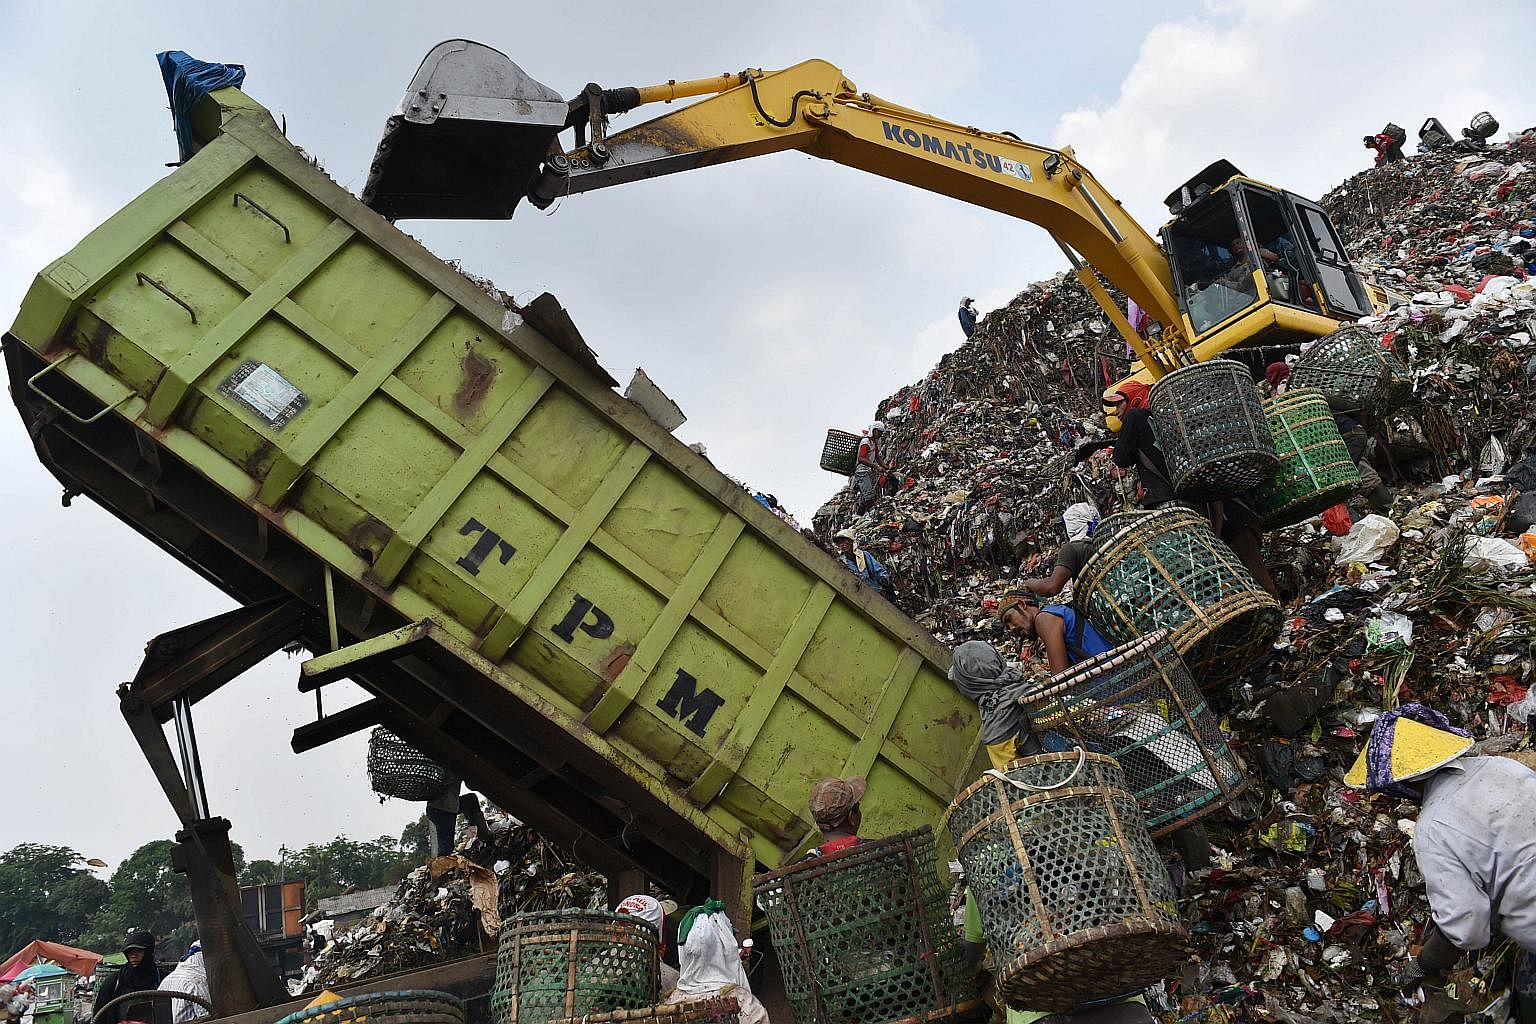 Jakarta is also facing the waste crisis | The Straits Times